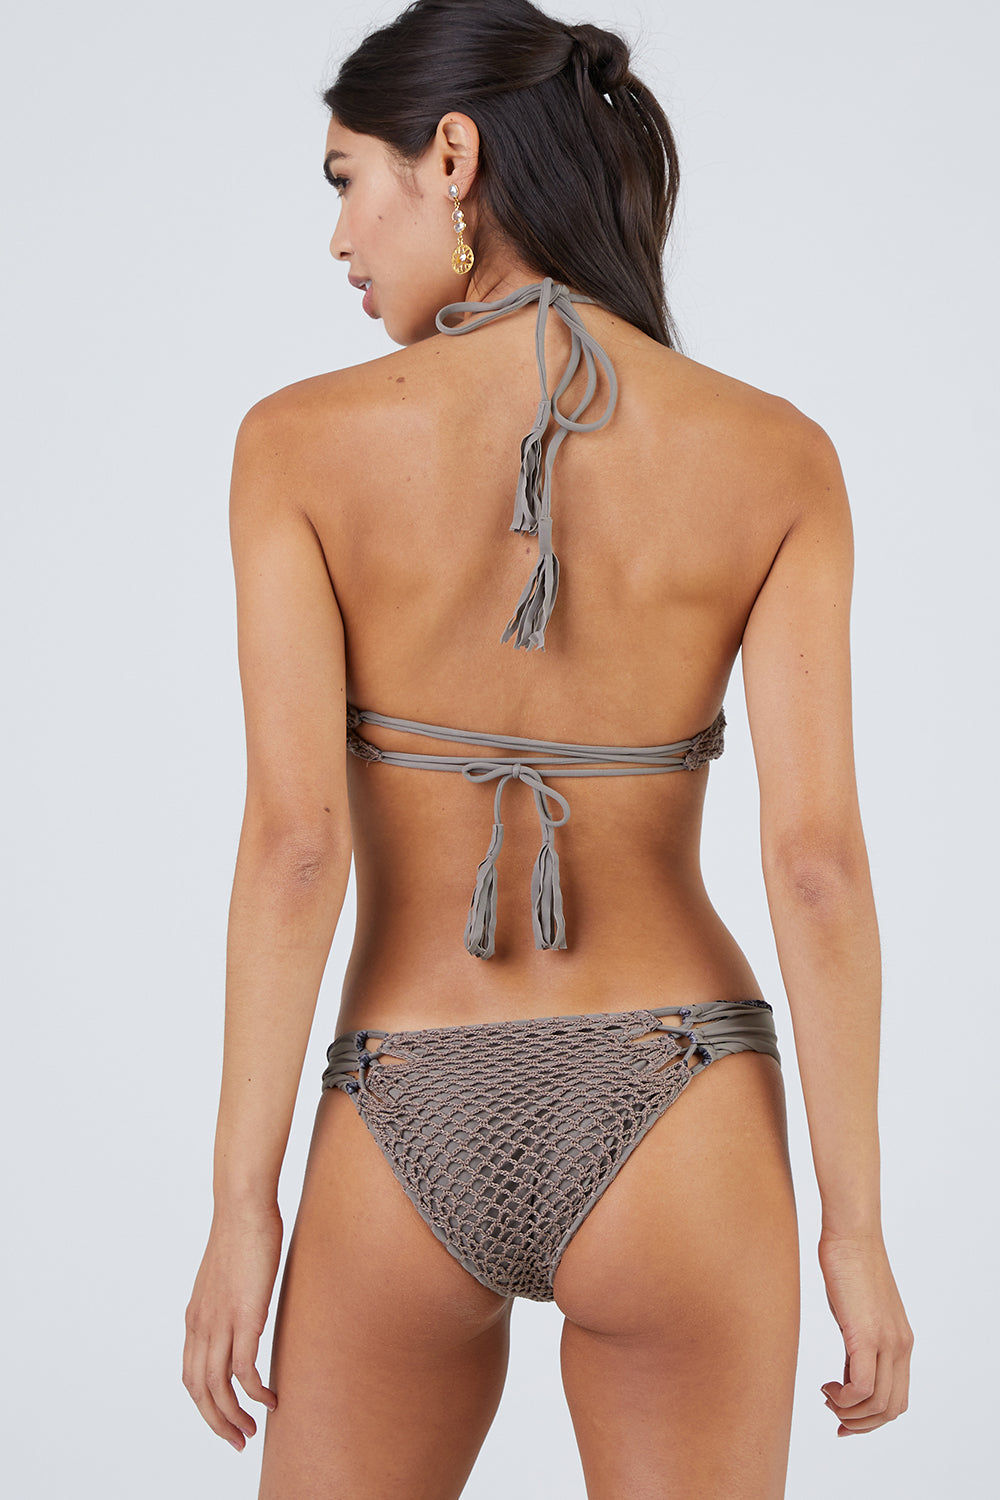 ACACIA Papio Cheeky Crochet Bikini Bottom - Cement Grey Bikini Bottom   Cement Grey  Acacia Papio Crochet Cheeky Bikini Bottom - Cement Back View   Smooth Wide Straps Lacing Side Detail Crochet Overlay Front & Back  Cheeky - Moderate Coverage  Back View